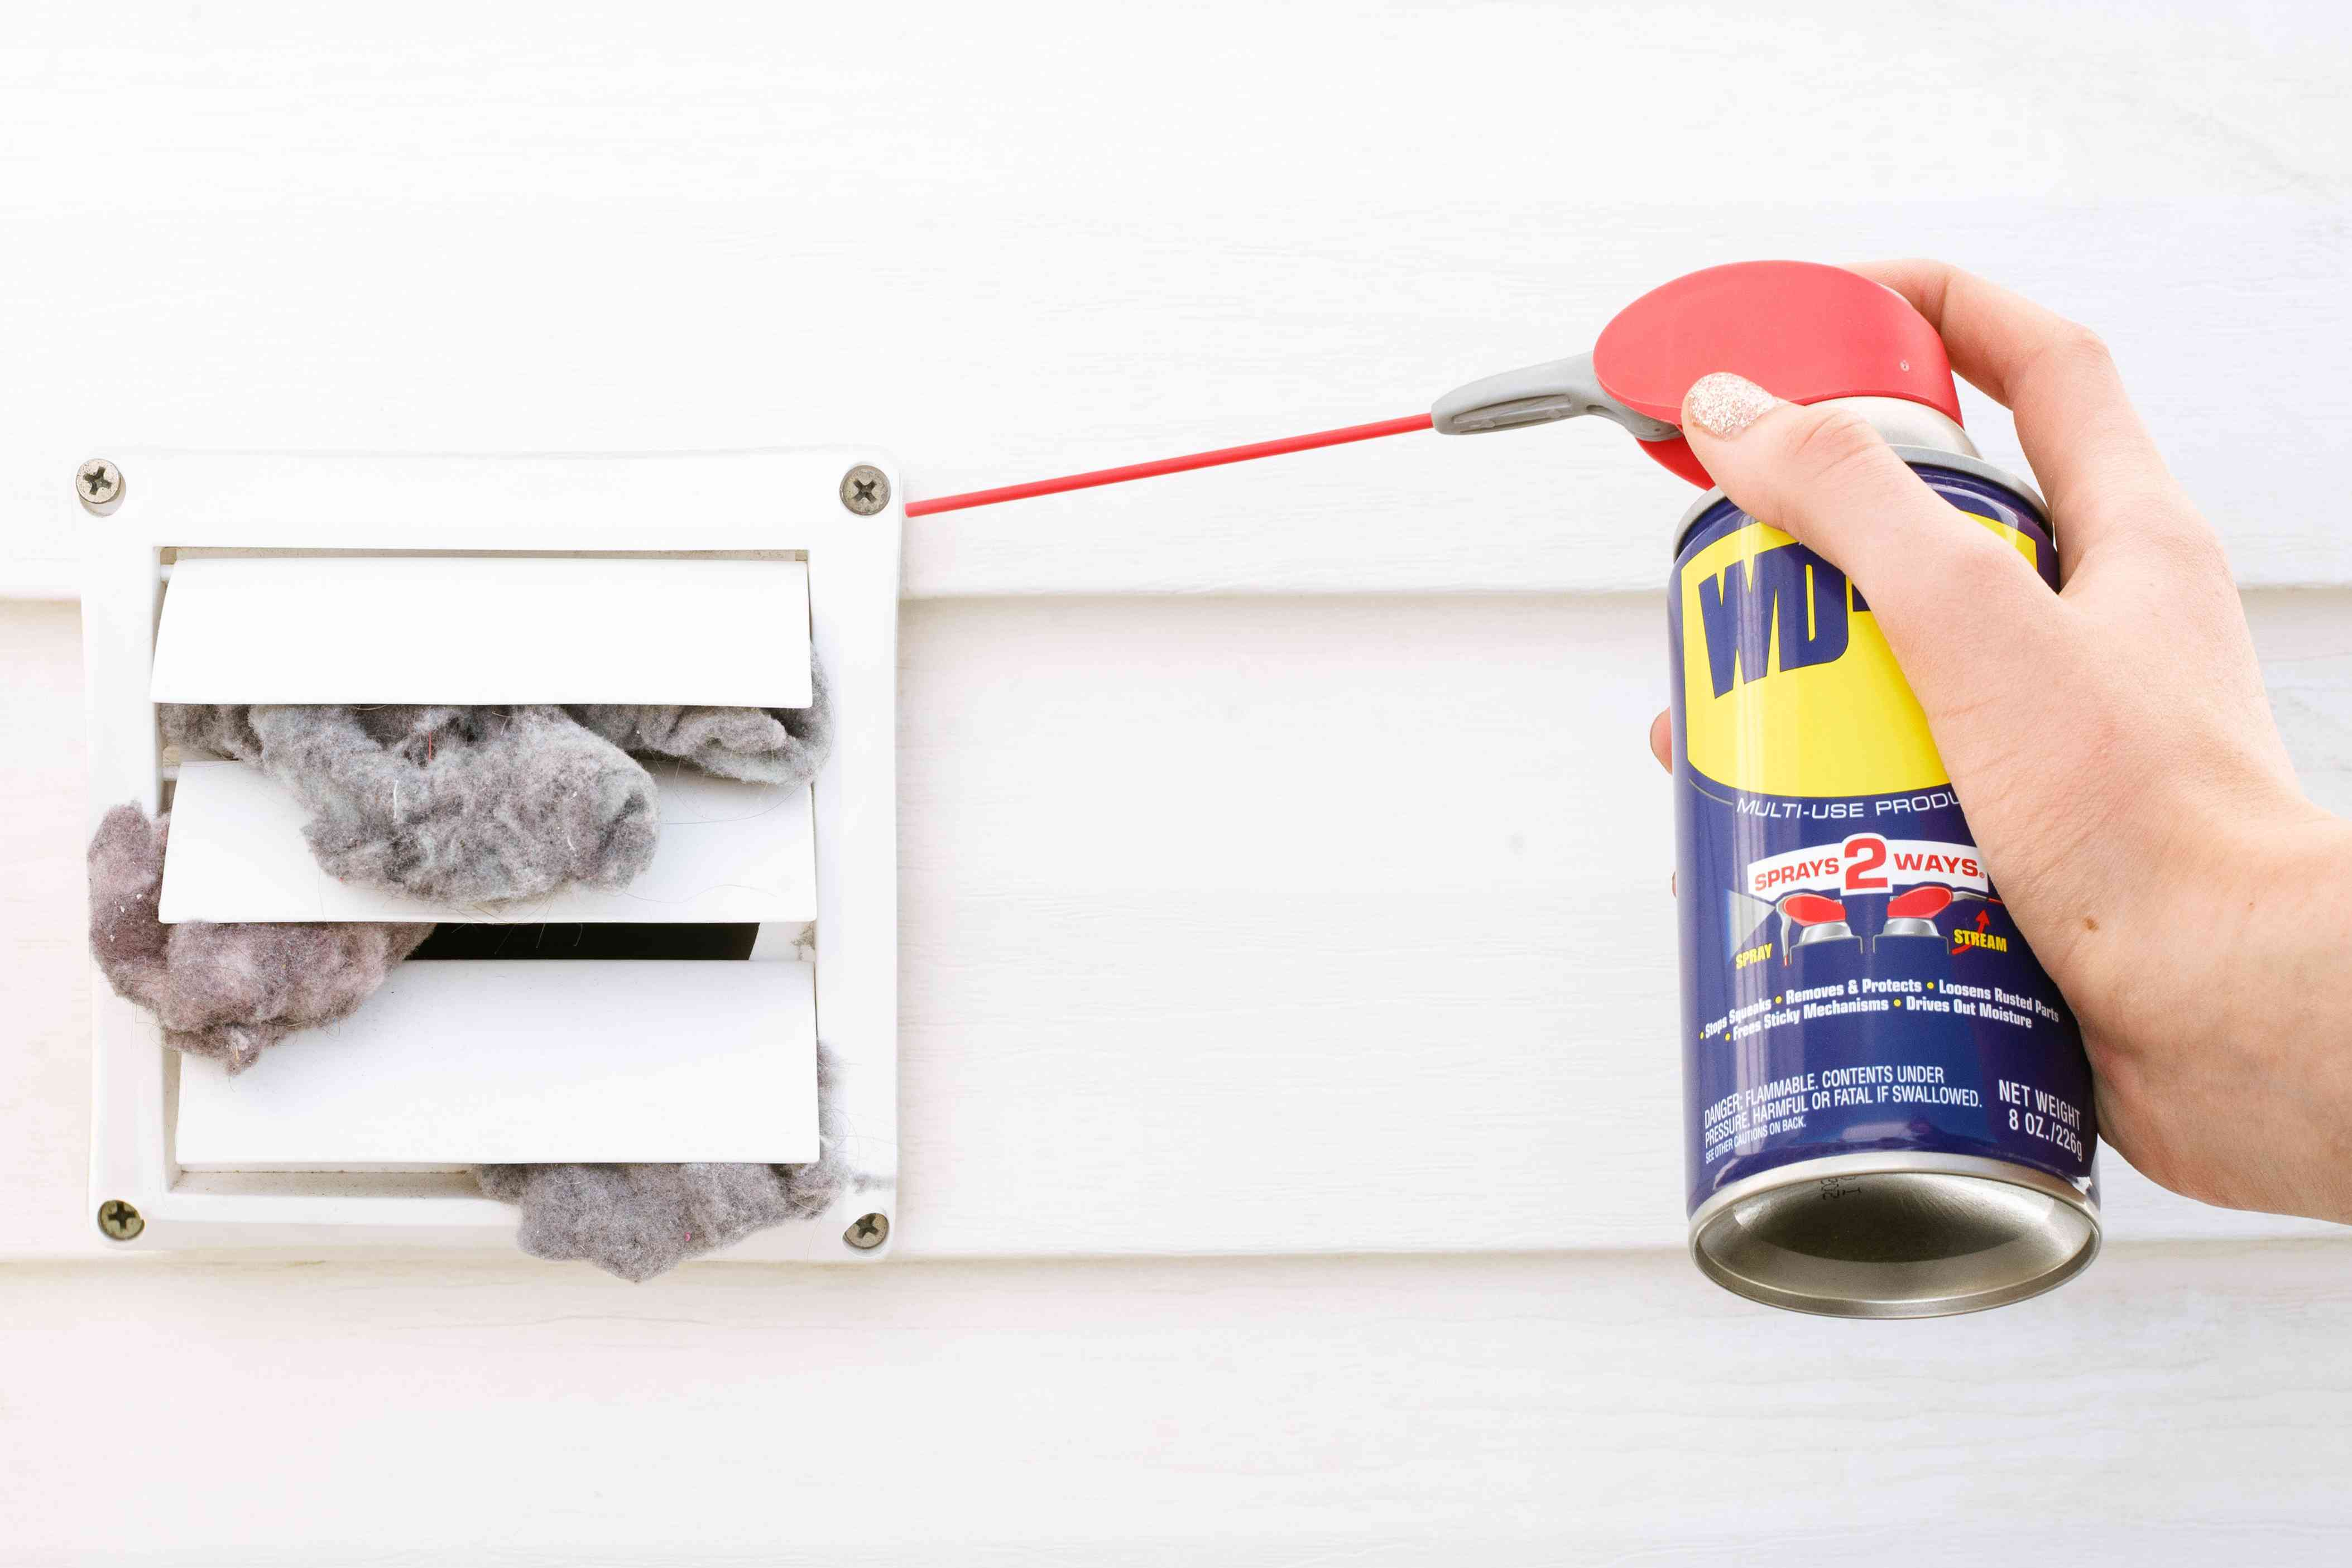 Lubricant added to outside dryer vents with handheld WD40 can